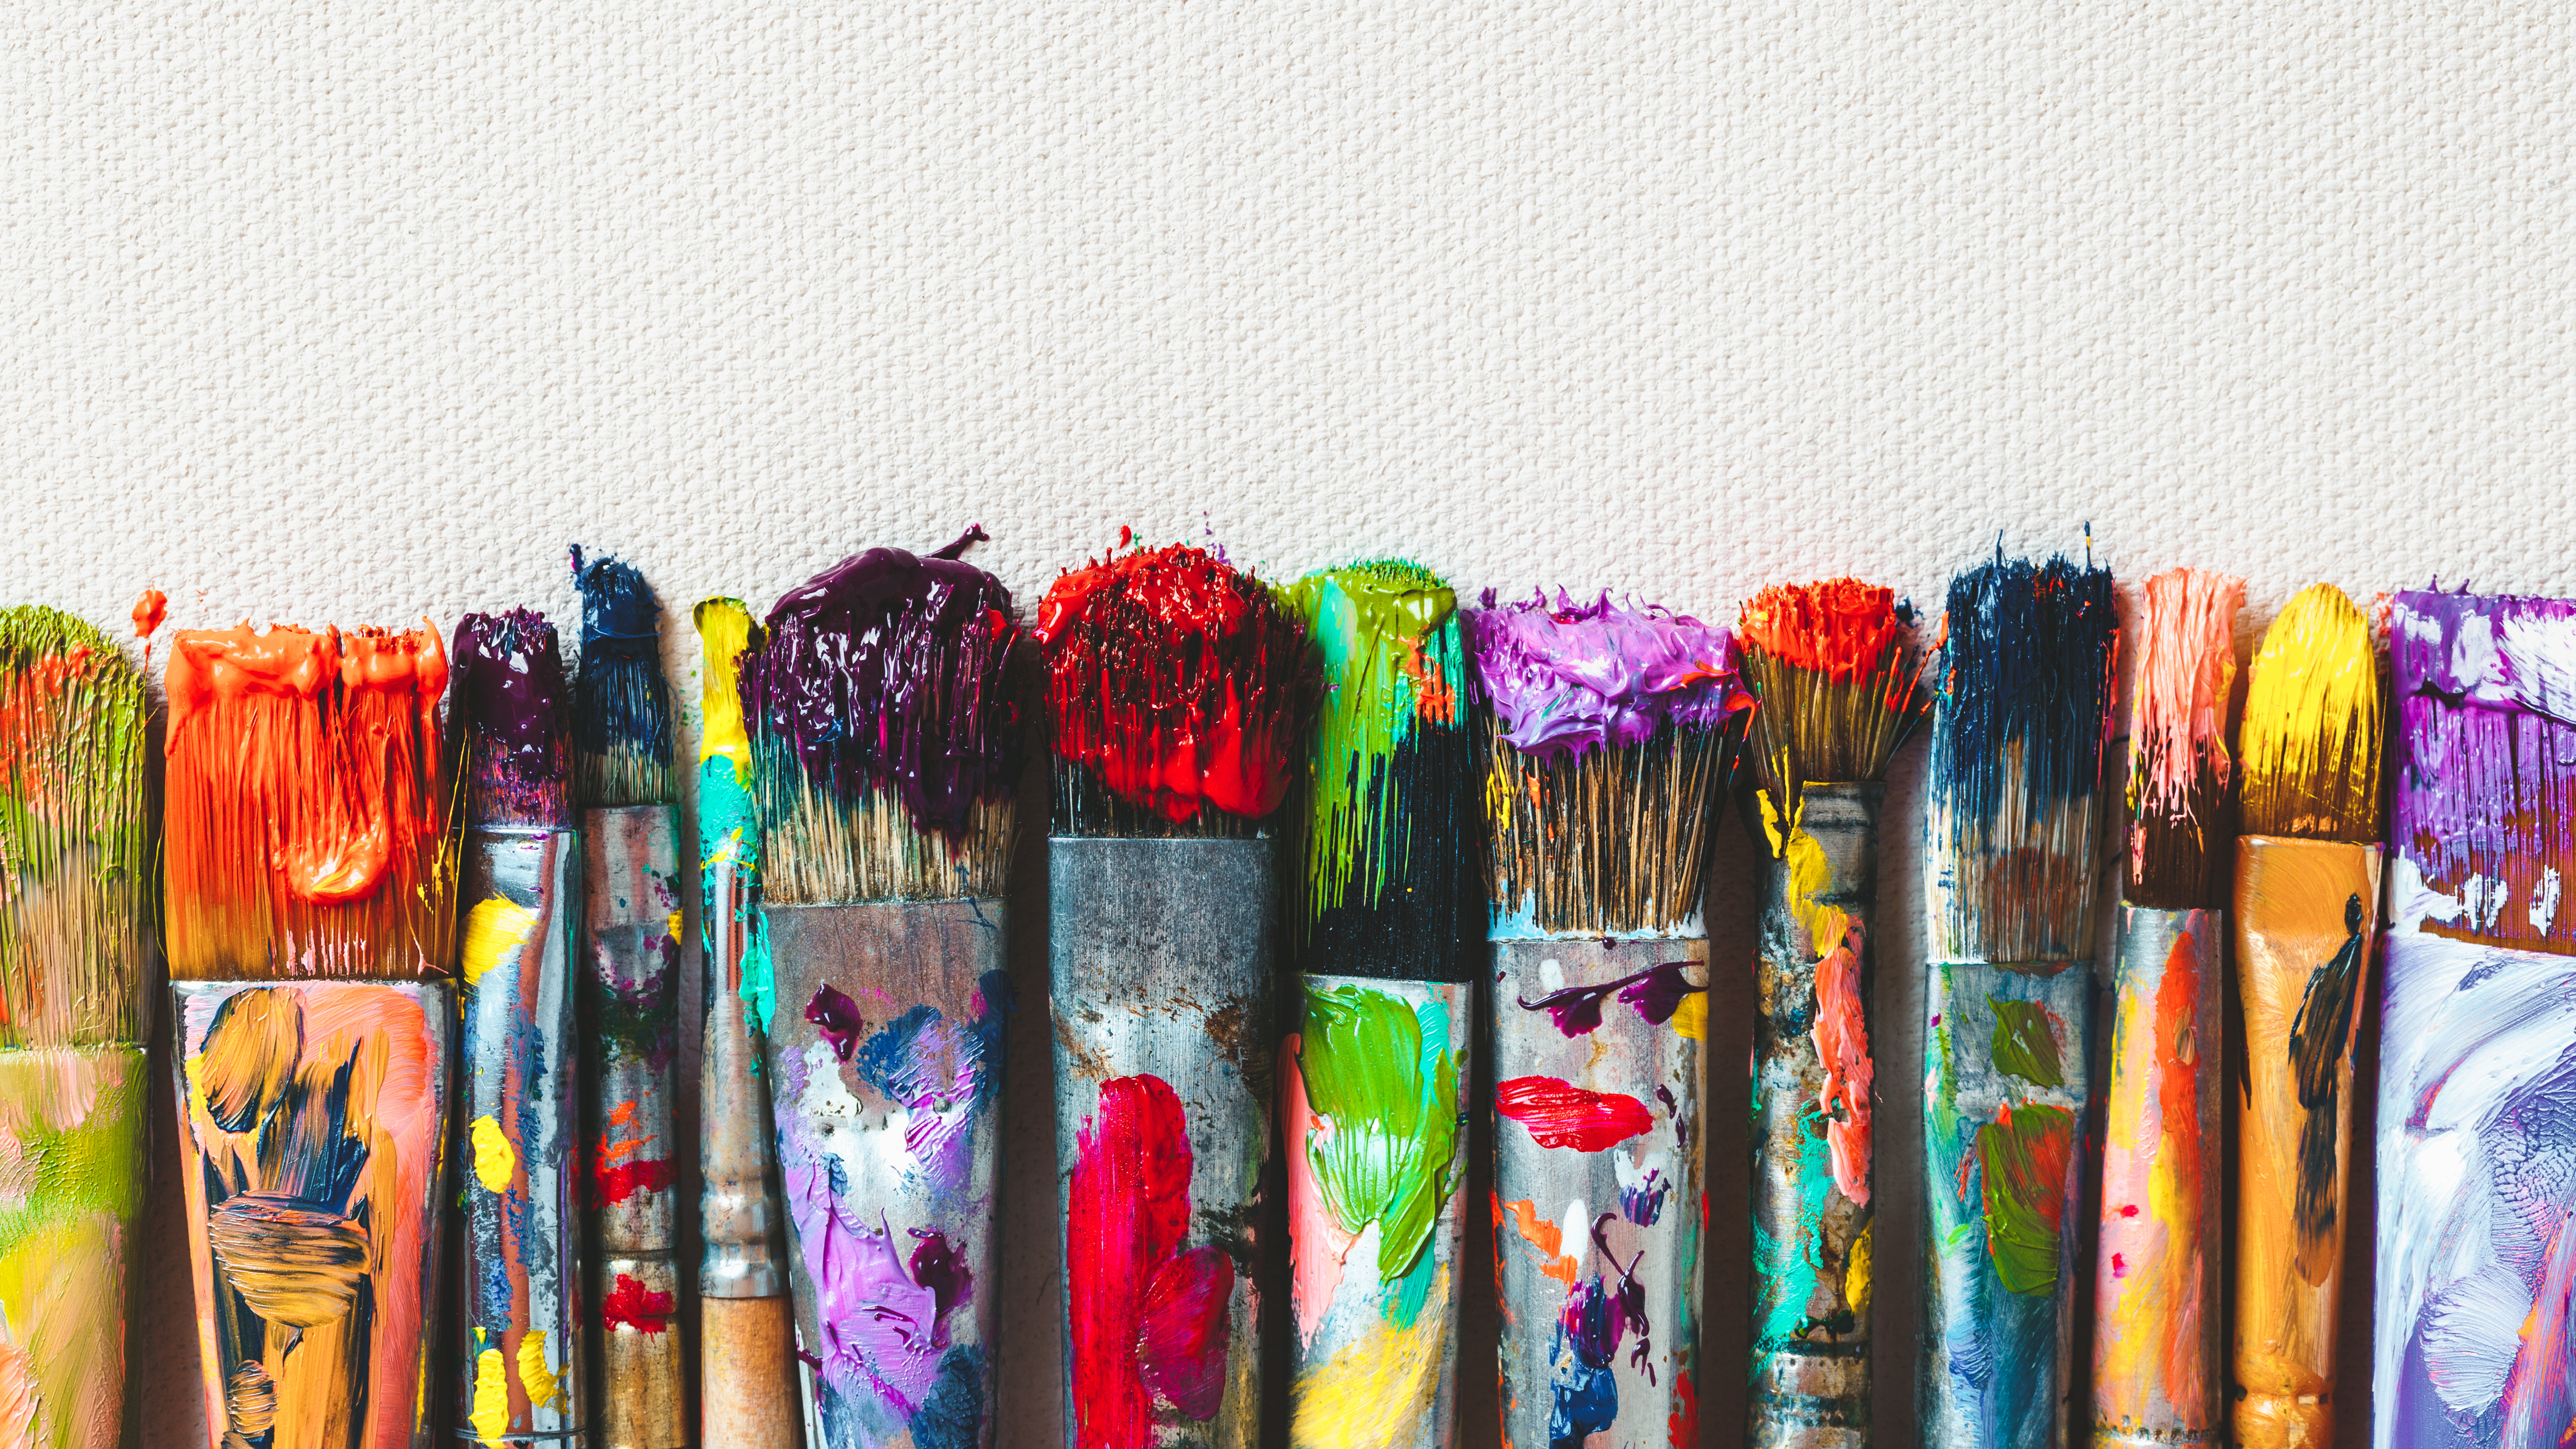 These High Quality Oil Paint Brushes Will Help Bring Out Your Inner Artist